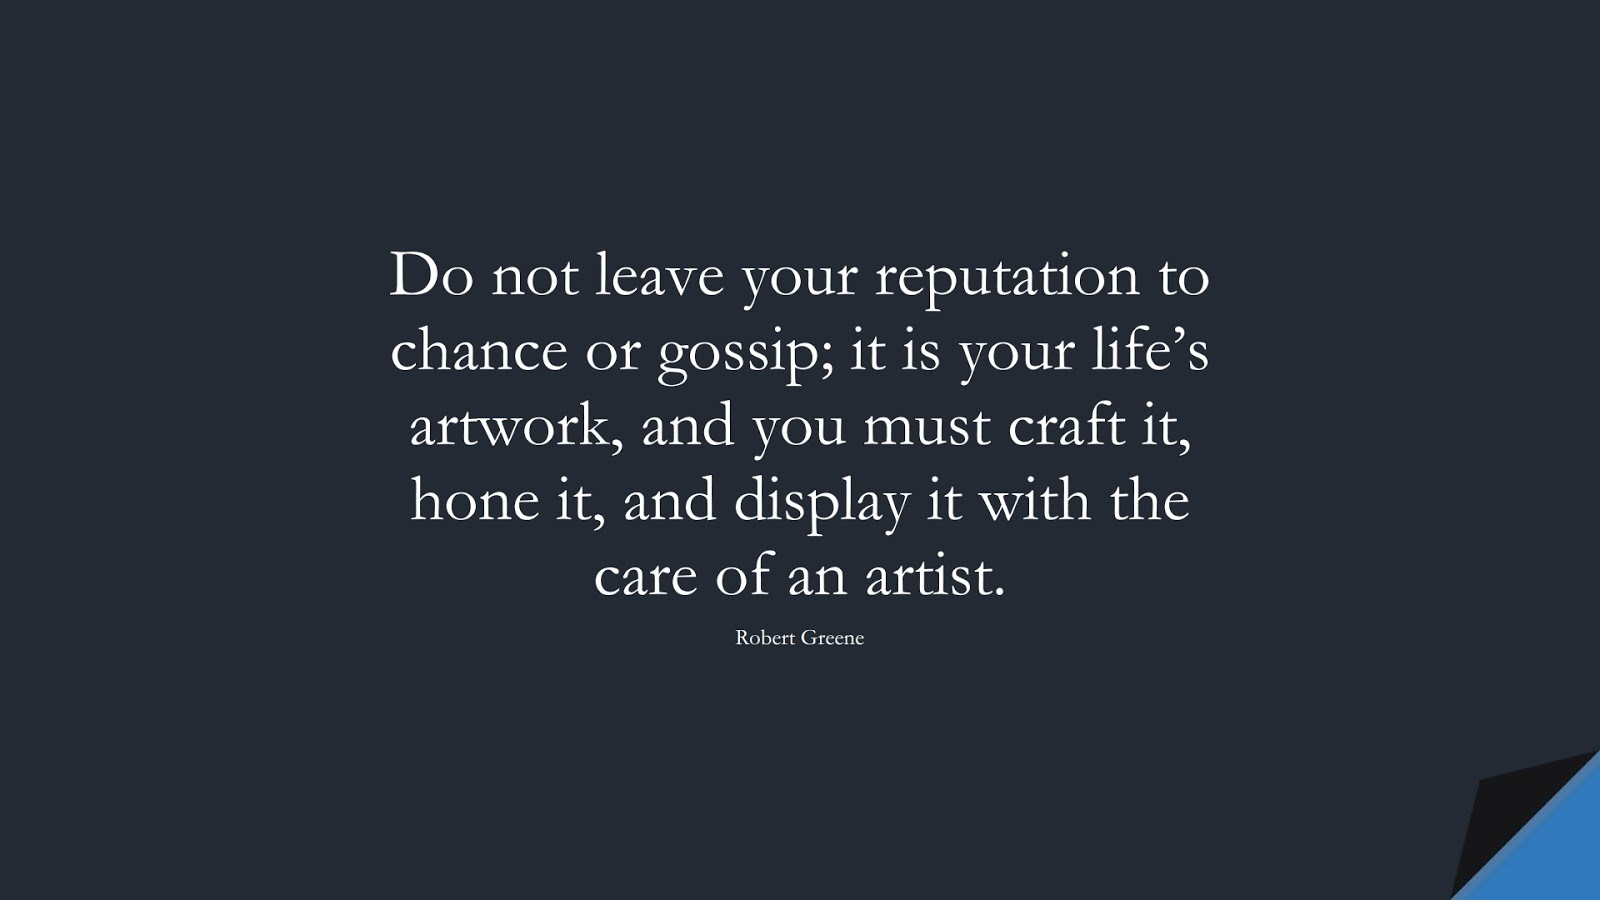 Do not leave your reputation to chance or gossip; it is your life's artwork, and you must craft it, hone it, and display it with the care of an artist. (Robert Greene);  #HardWorkQuotes